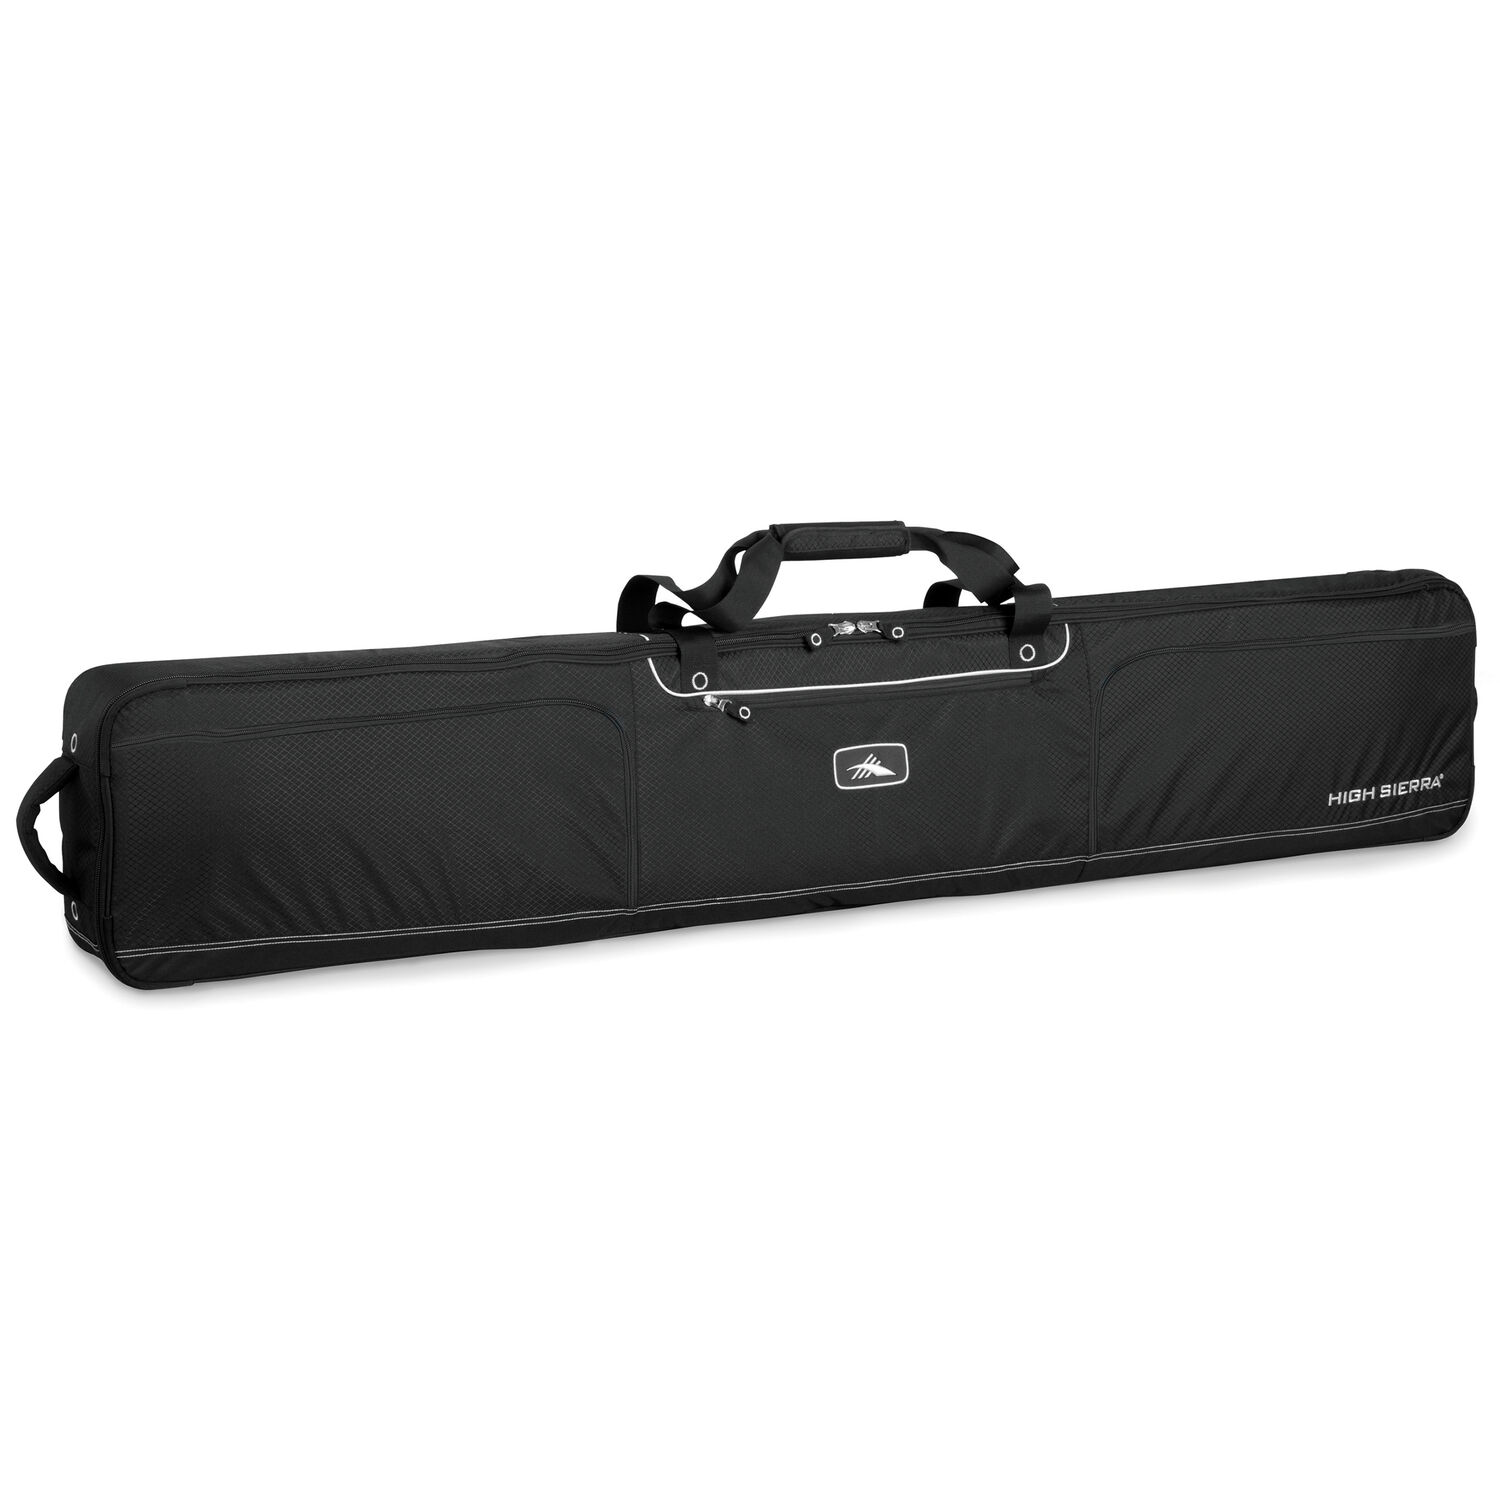 544a6d69964 High Sierra Wheeled Double Ski Snowboard Bag in the color Black Black.